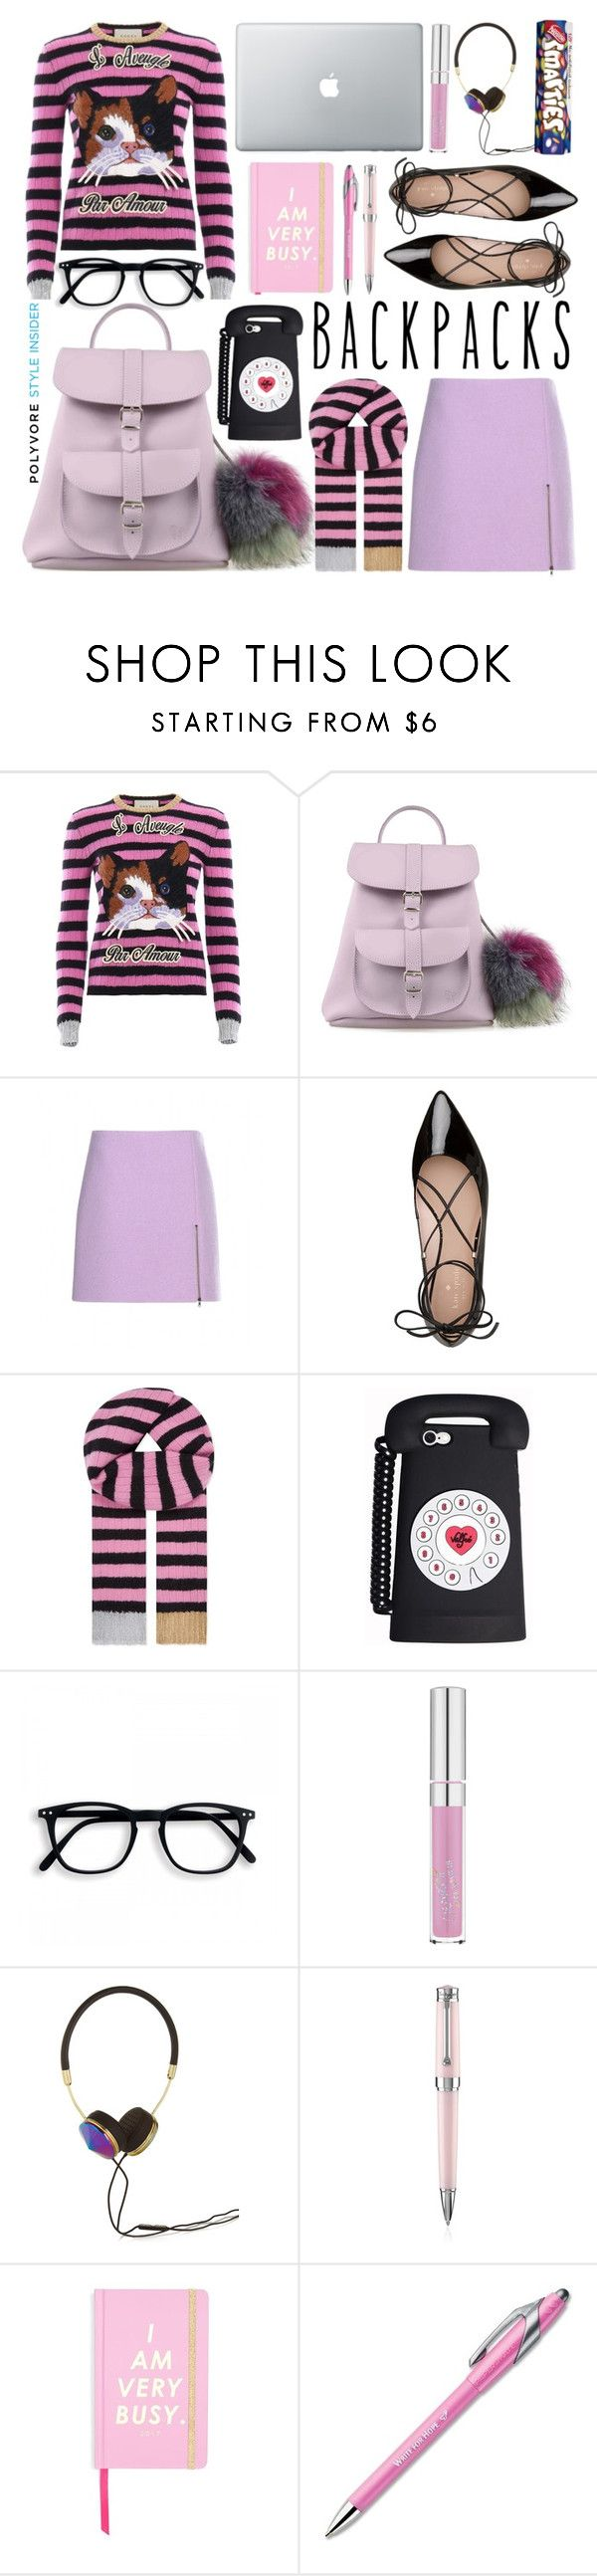 """""""Rule School : Cool Backpacks"""" by monica-dick ❤ liked on Polyvore featuring Gucci, Grafea, Carven, Kate Spade, Frends, Montegrappa, ban.do, Paper Mate, backpacks and contestentry"""